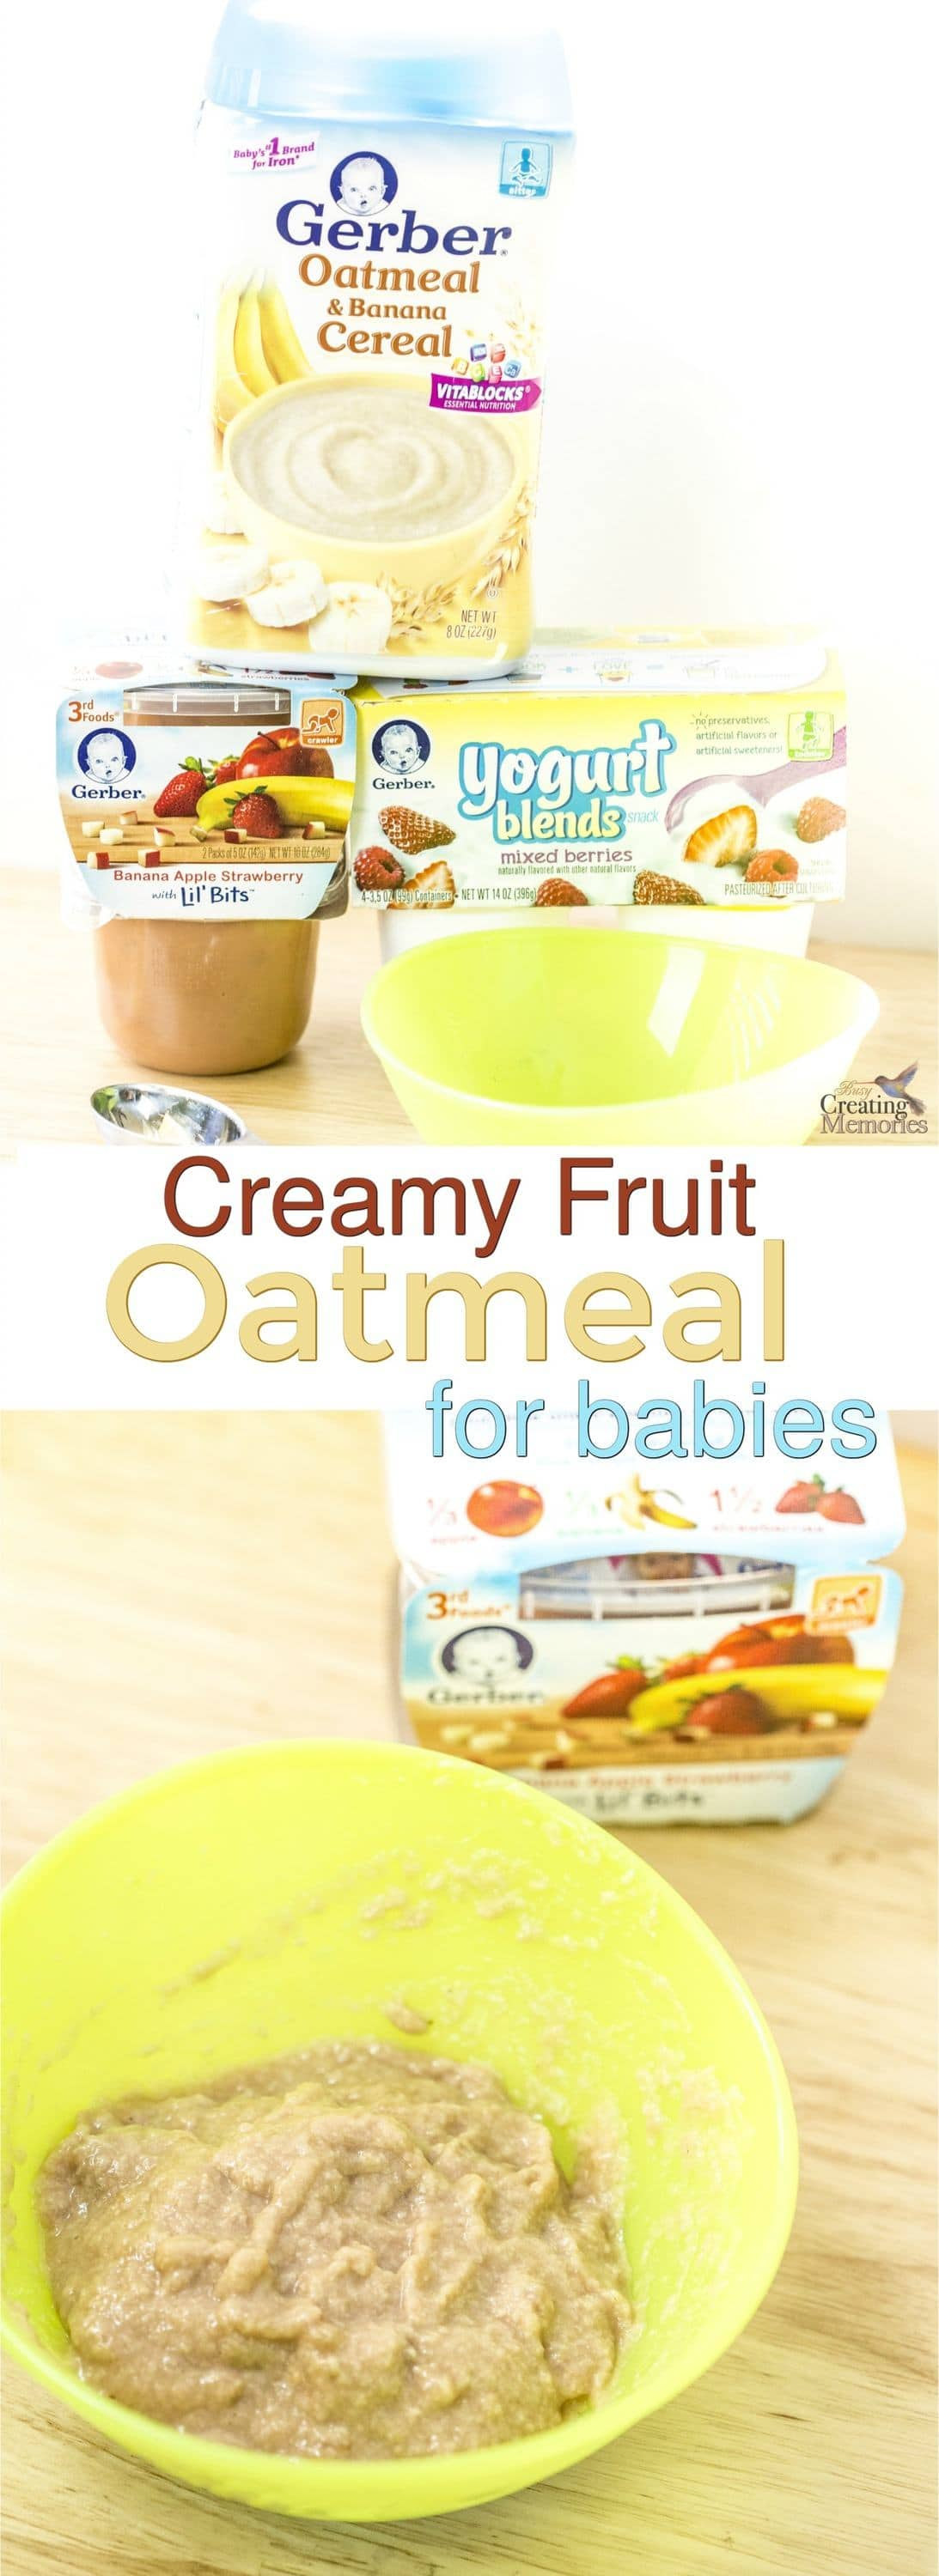 When your little one is learning to chew, finding appropriate foods can be a challenge. Try this creamy fruit oatmeal for babies to give them texture, flavor and nutrition for developmental needs!